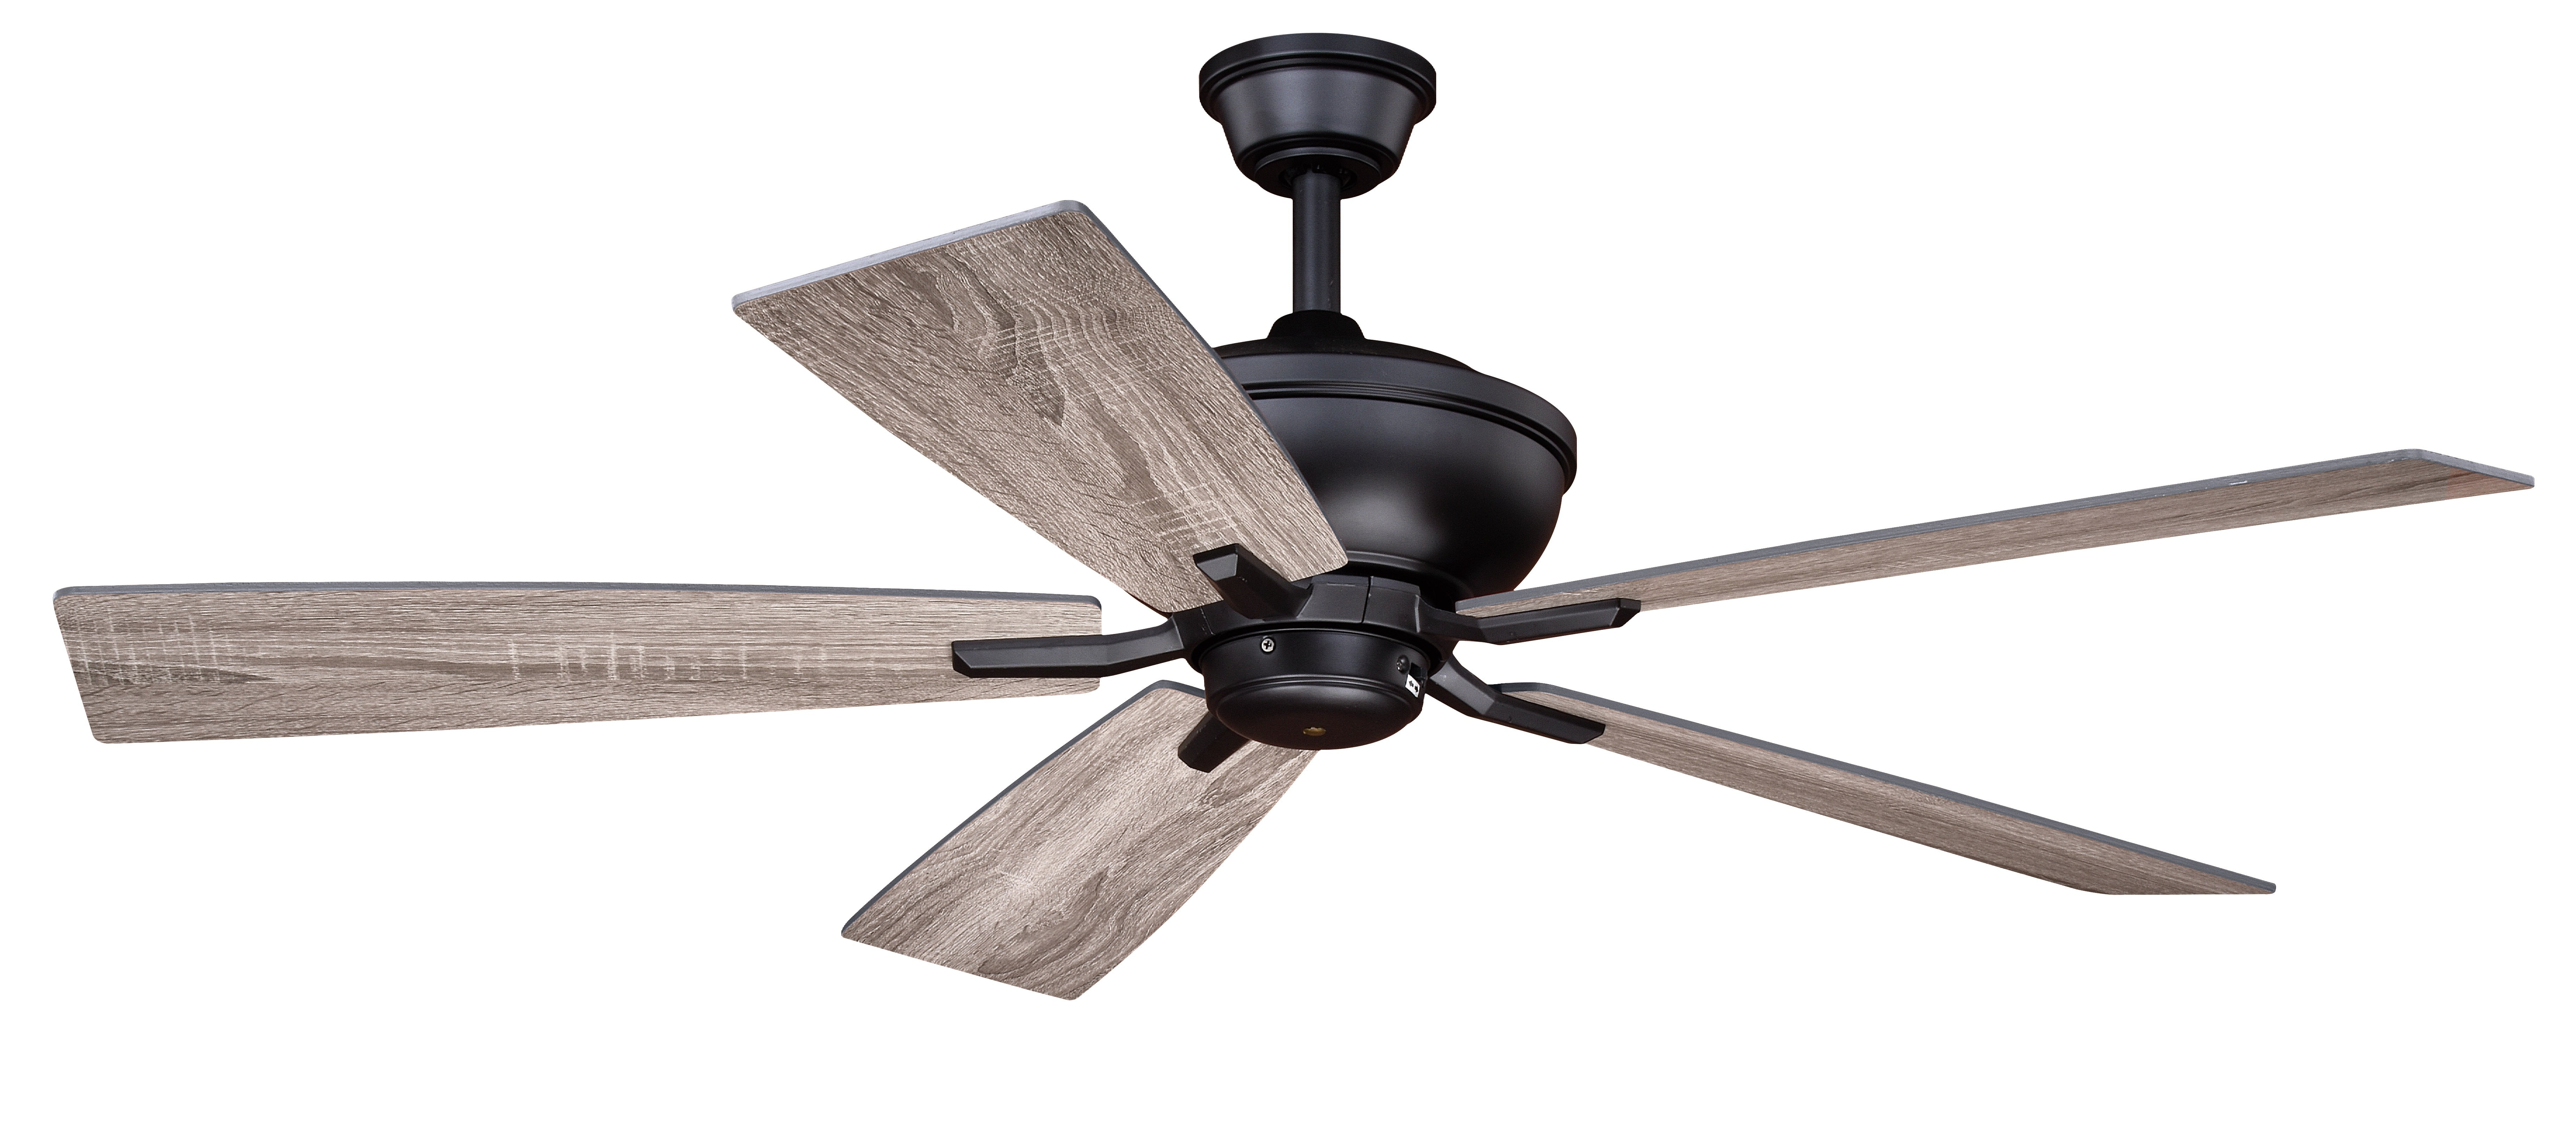 """Well Known 52"""" Hirsch 5 Blade Ceiling Fan With Remote, Light Kit Included Regarding Ravenna 5 Blade Ceiling Fans (View 20 of 20)"""